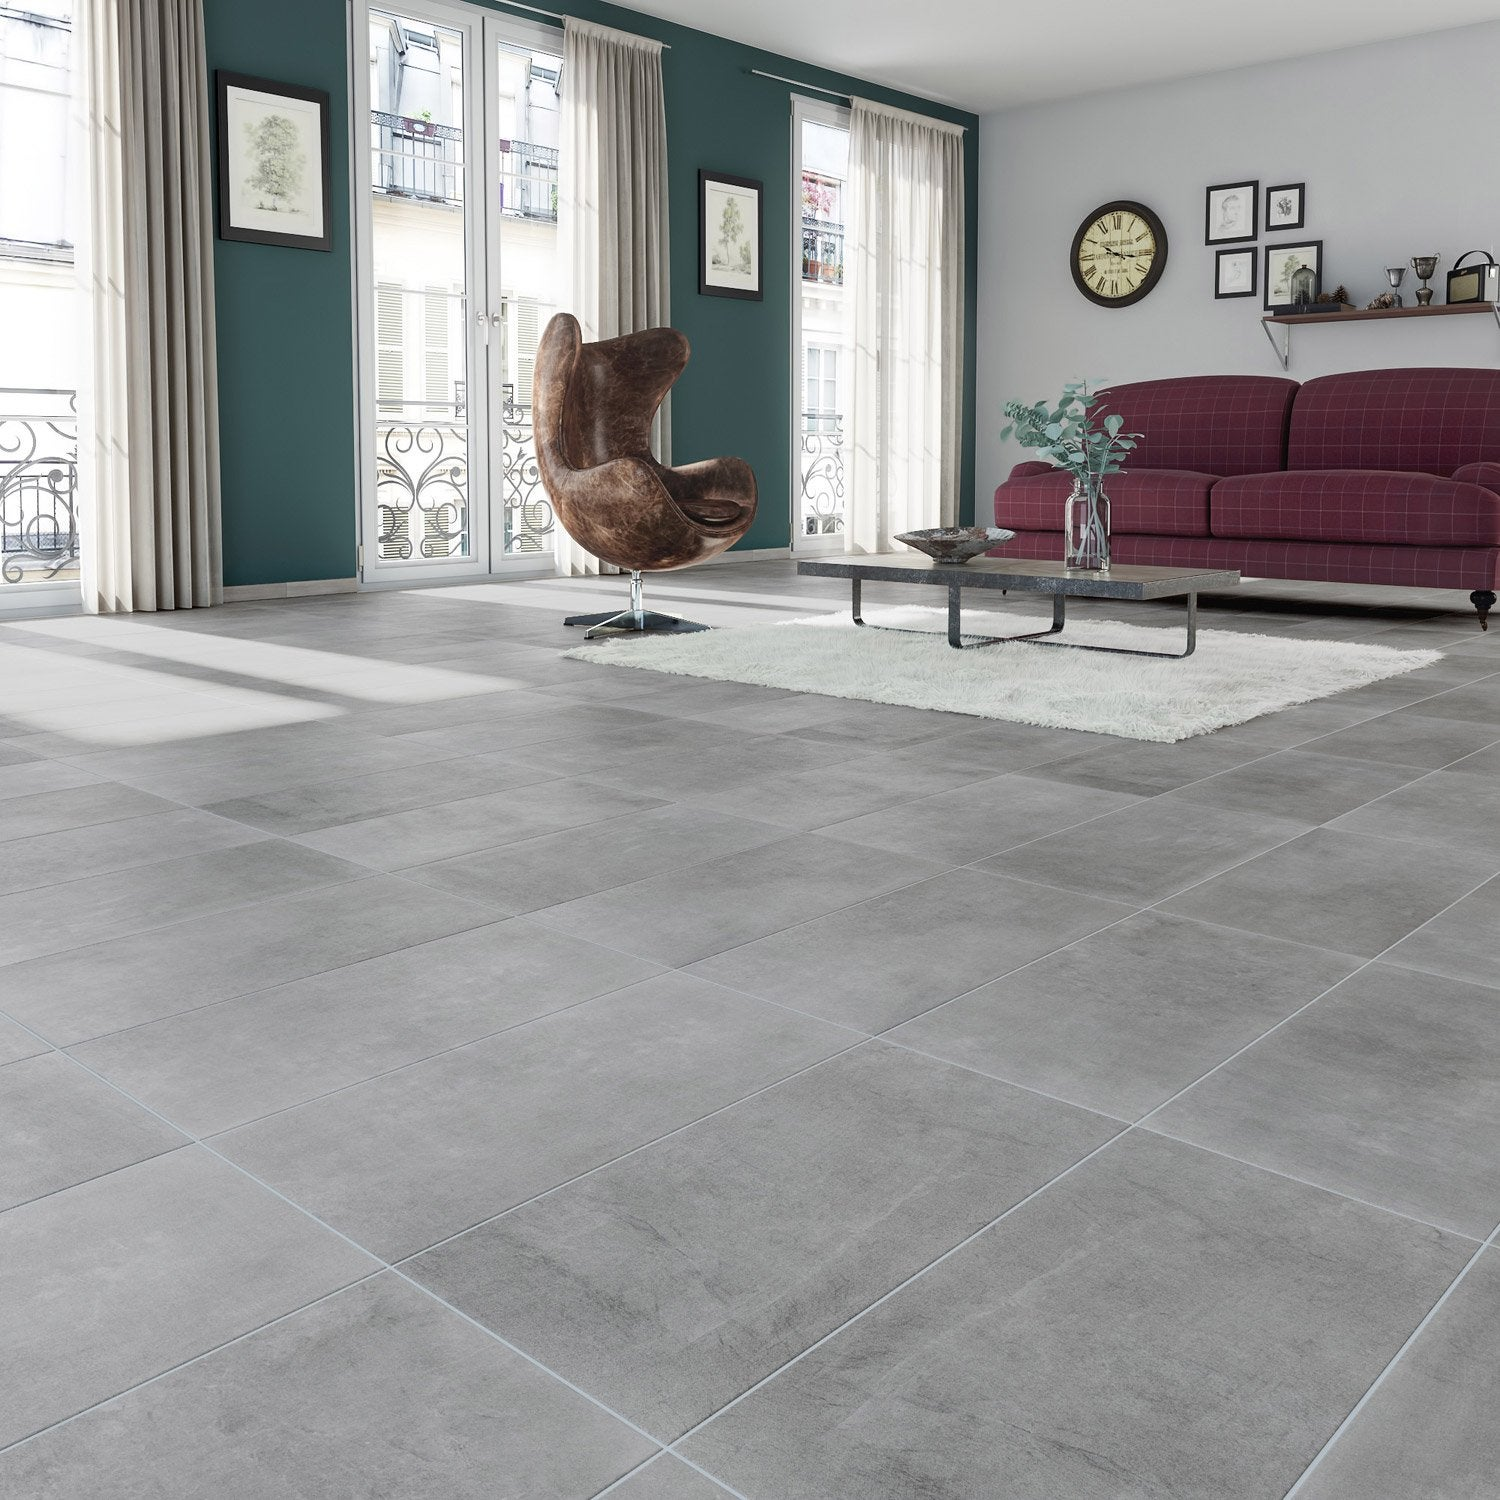 Carrelage sol et mur gris effet b ton new cottage x l for Carrelage 60x60 gris anthracite